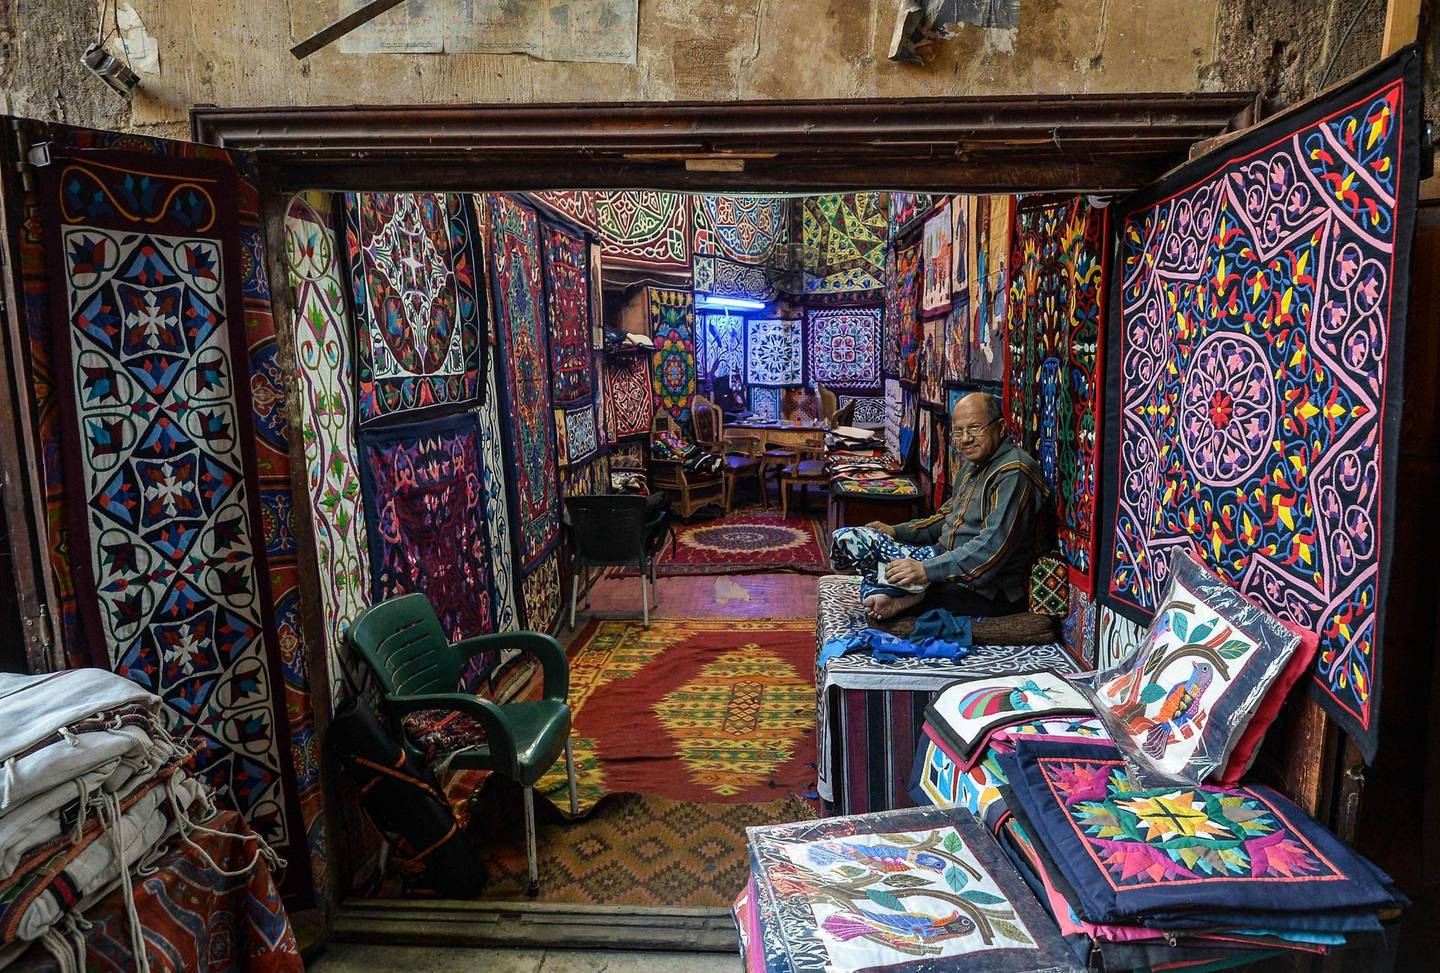 An Egyptian craftsman sits working on a tapestry in his shop in Khayamiya Street, or the Street of Tent-makers, in the old city of the Egyptian capital Cairo on December 18, 2018. Along the sides of the roofed street of Khayamiya, or the Street of Tent-makers, dozens of craftsmen's shops have drawn foreign visitors for years until the 2011 uprising toppled longtime ruler Hosni Mubarak after which business has slowed to a trickle. The centuries-old art of Khayamiya, belived to have emerged during the Fatimid dynasty (10th-12th century AD), goes back to the time of travelling caravans, when huge tent pavilions were used as shields from the desert's searing sun. / AFP / Mohamed el-Shahed